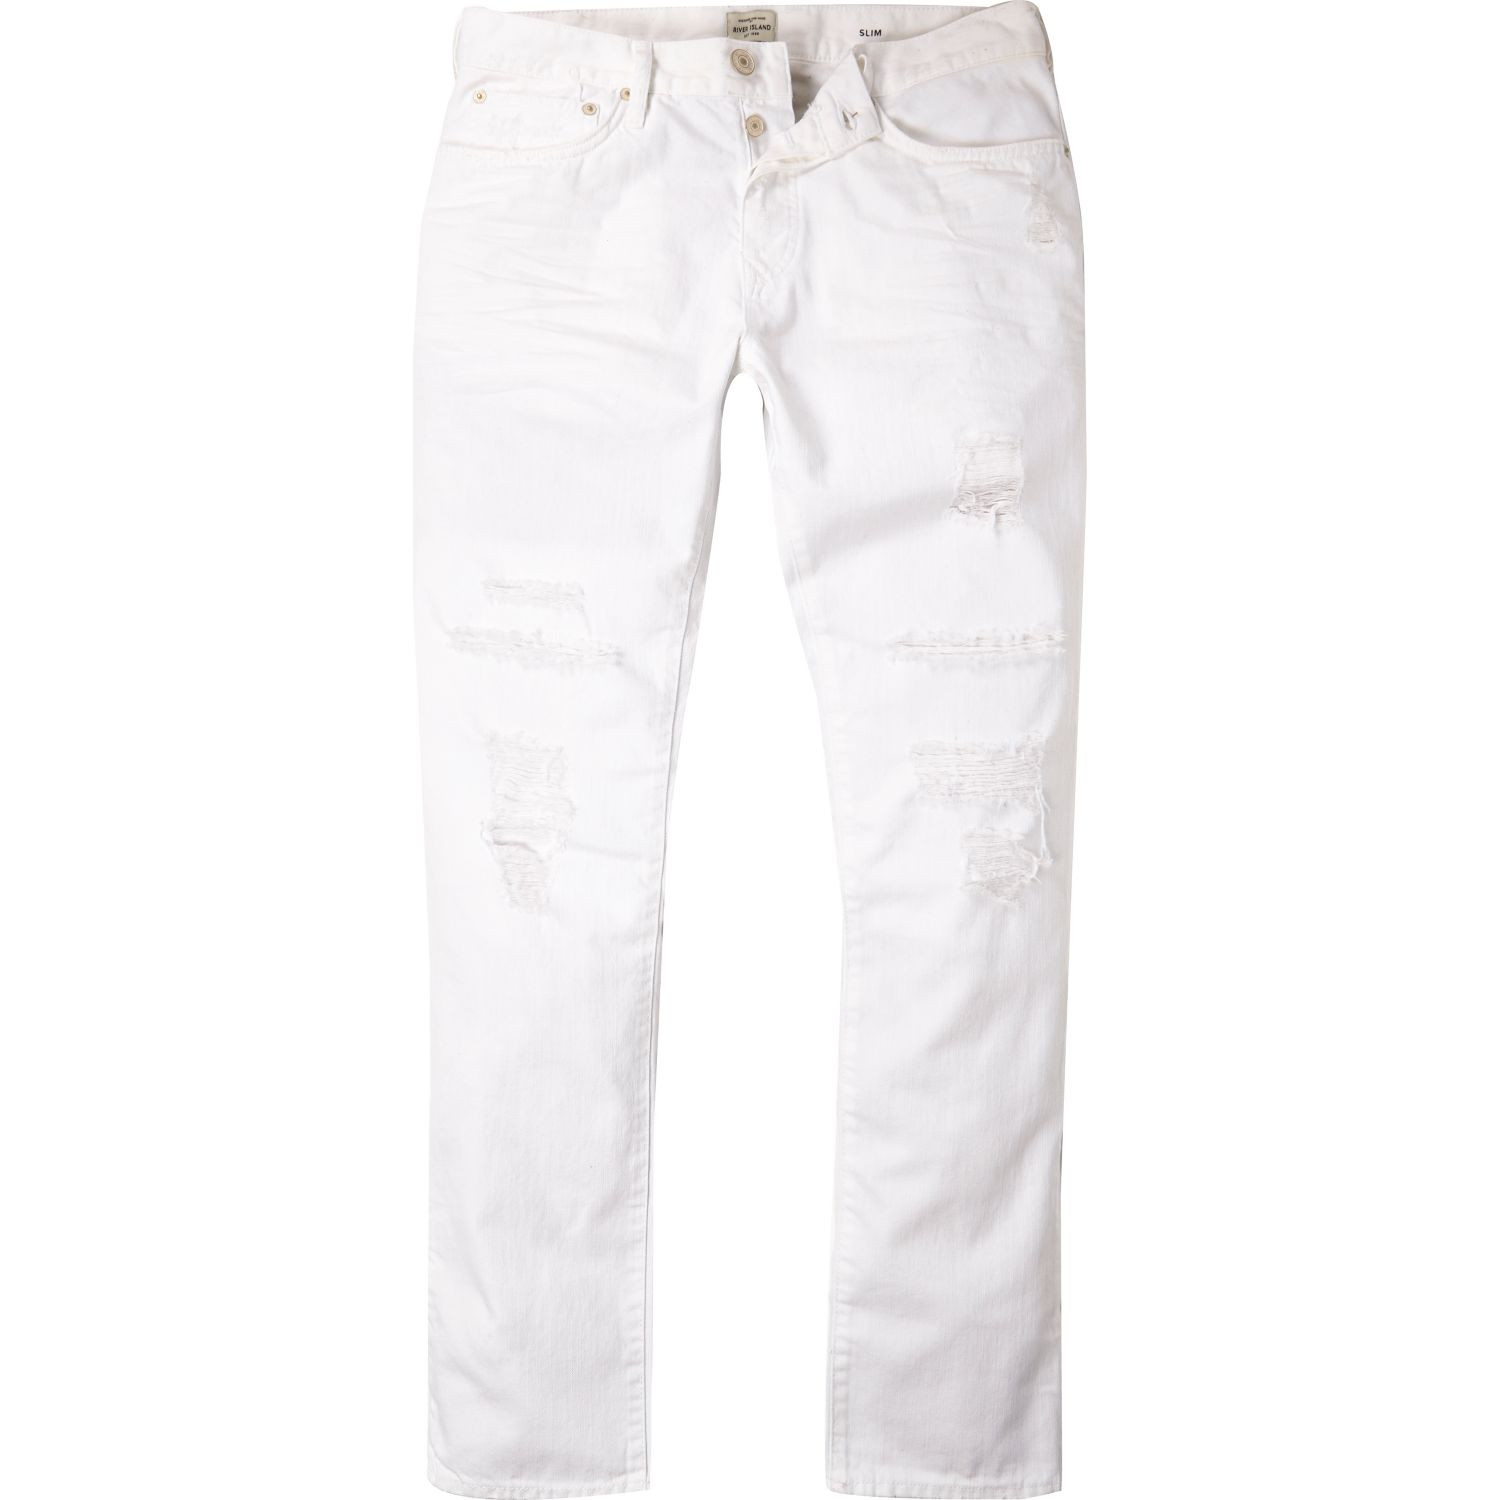 25a29534 River Island White Ripped Dylan Slim Jeans in White for Men - Lyst